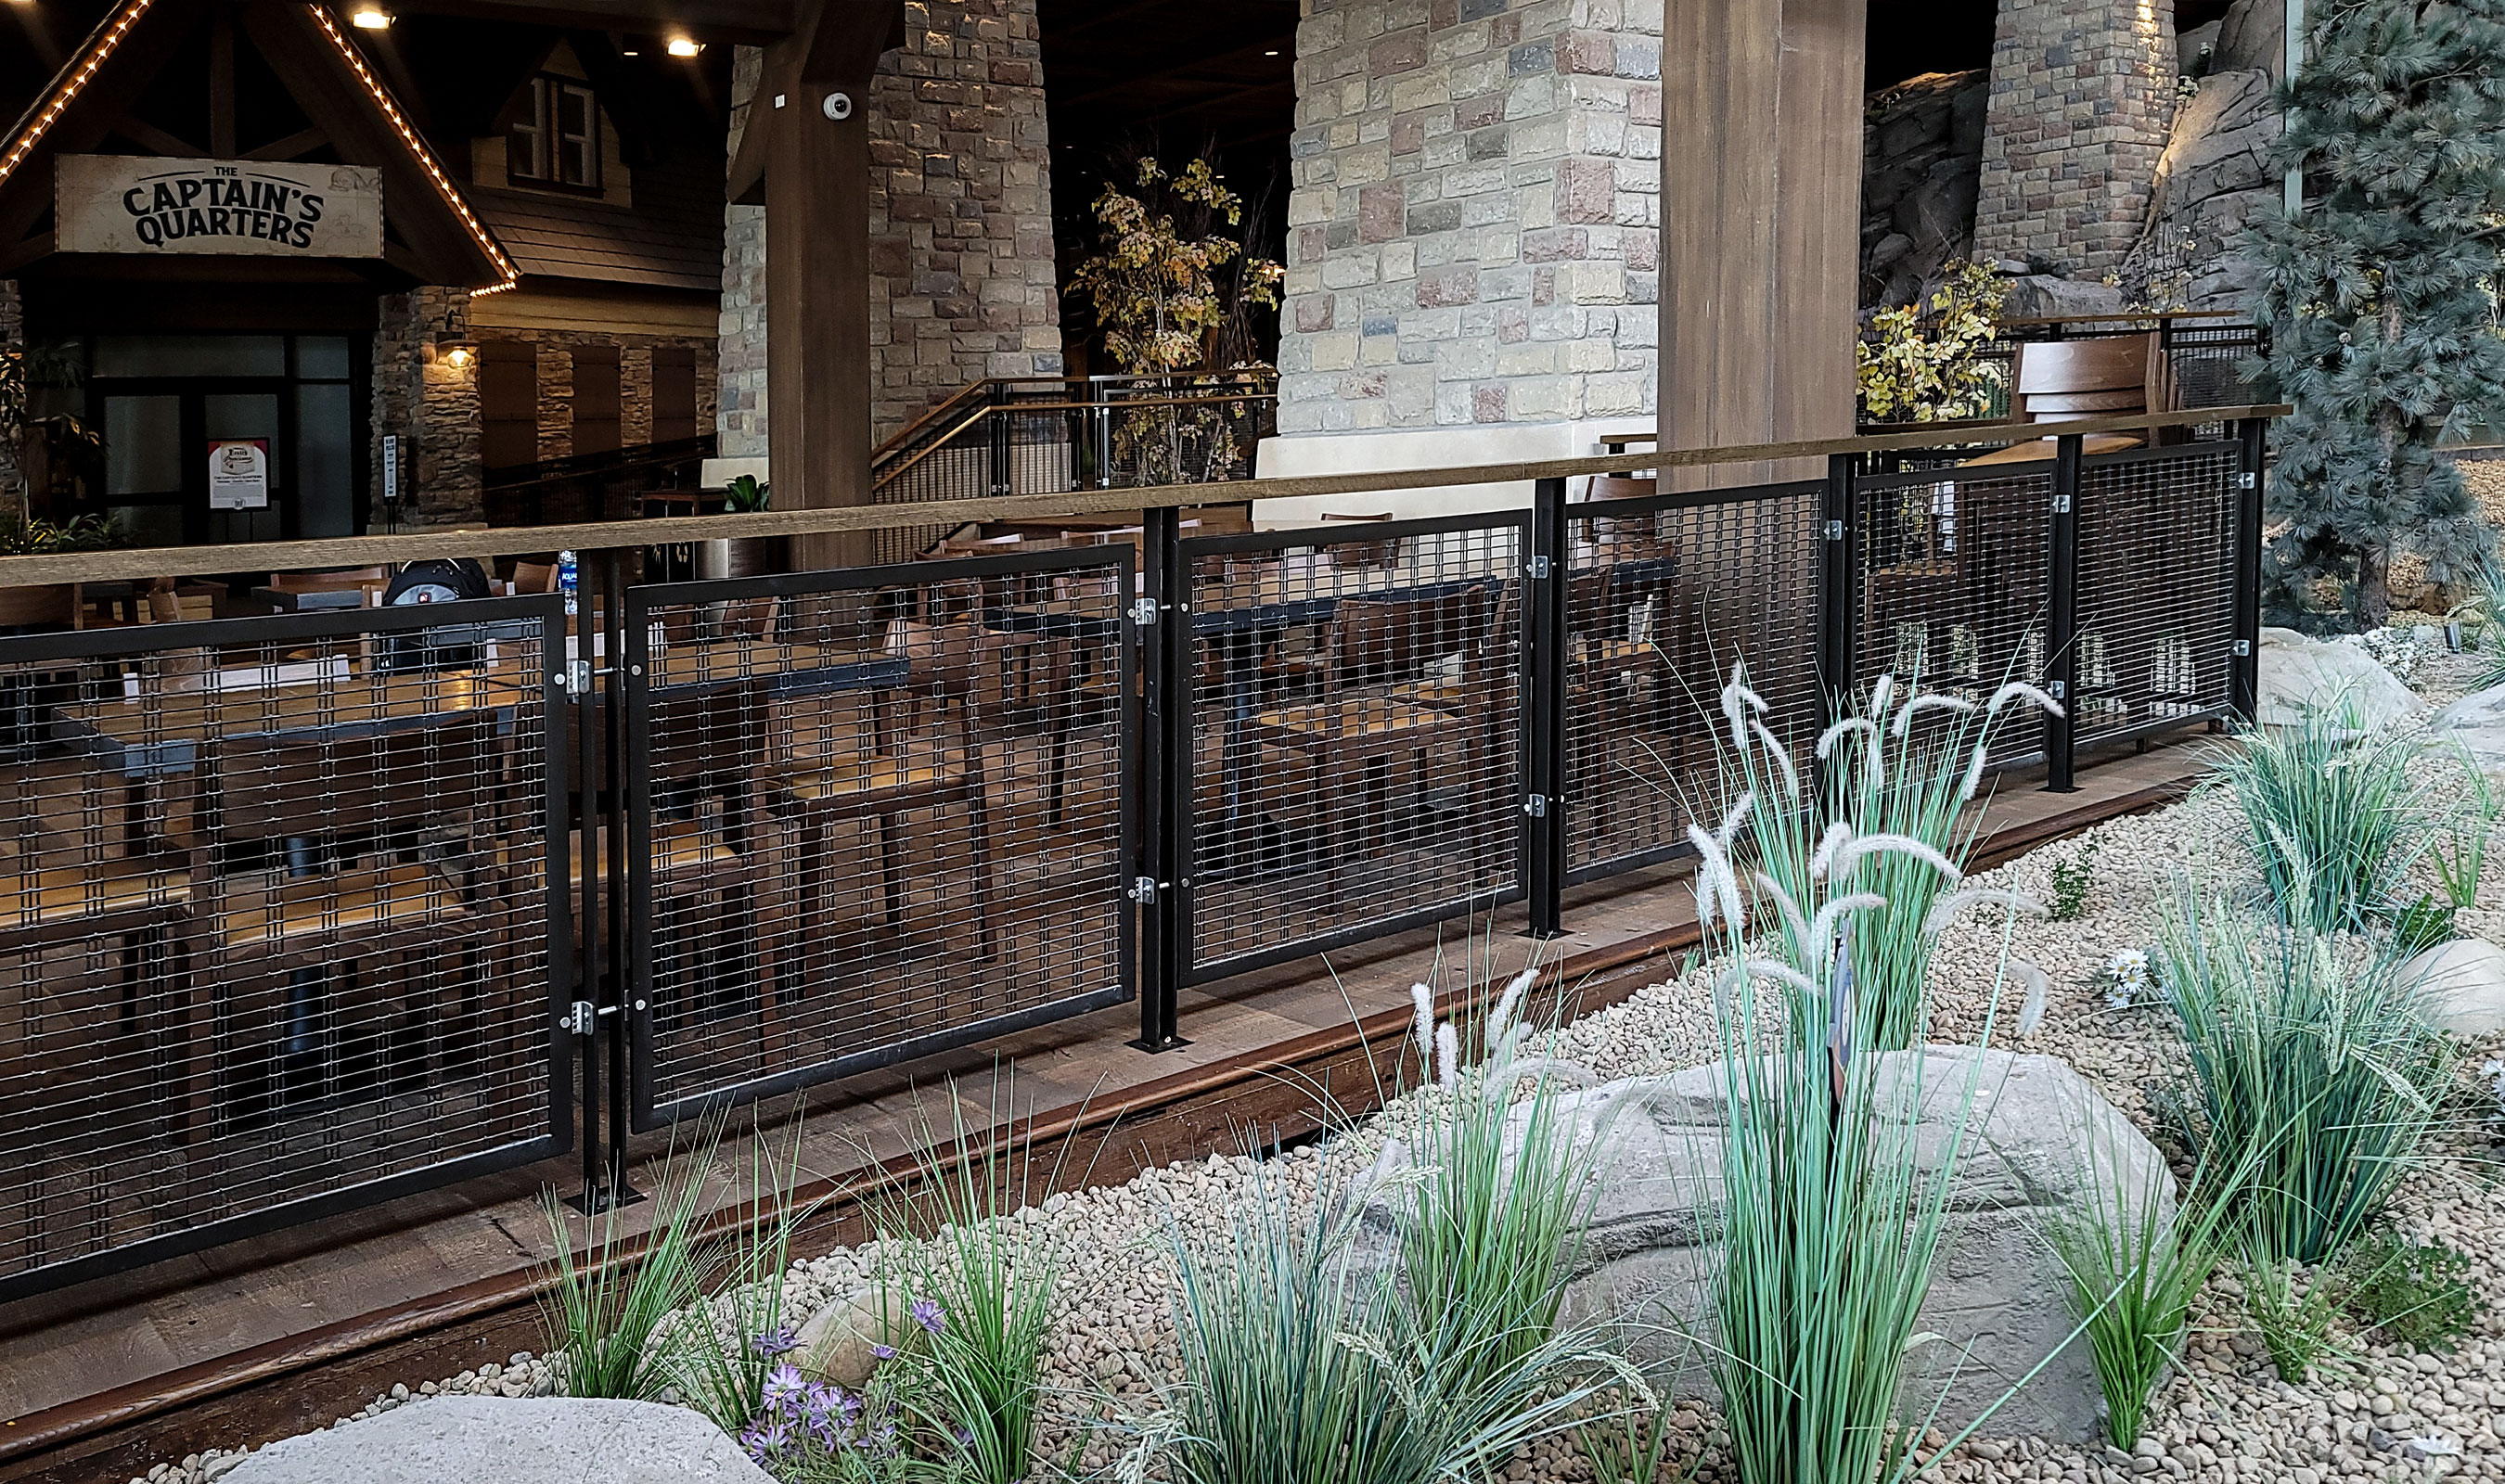 The common area restaurant patio is surrounded by black metal railings.